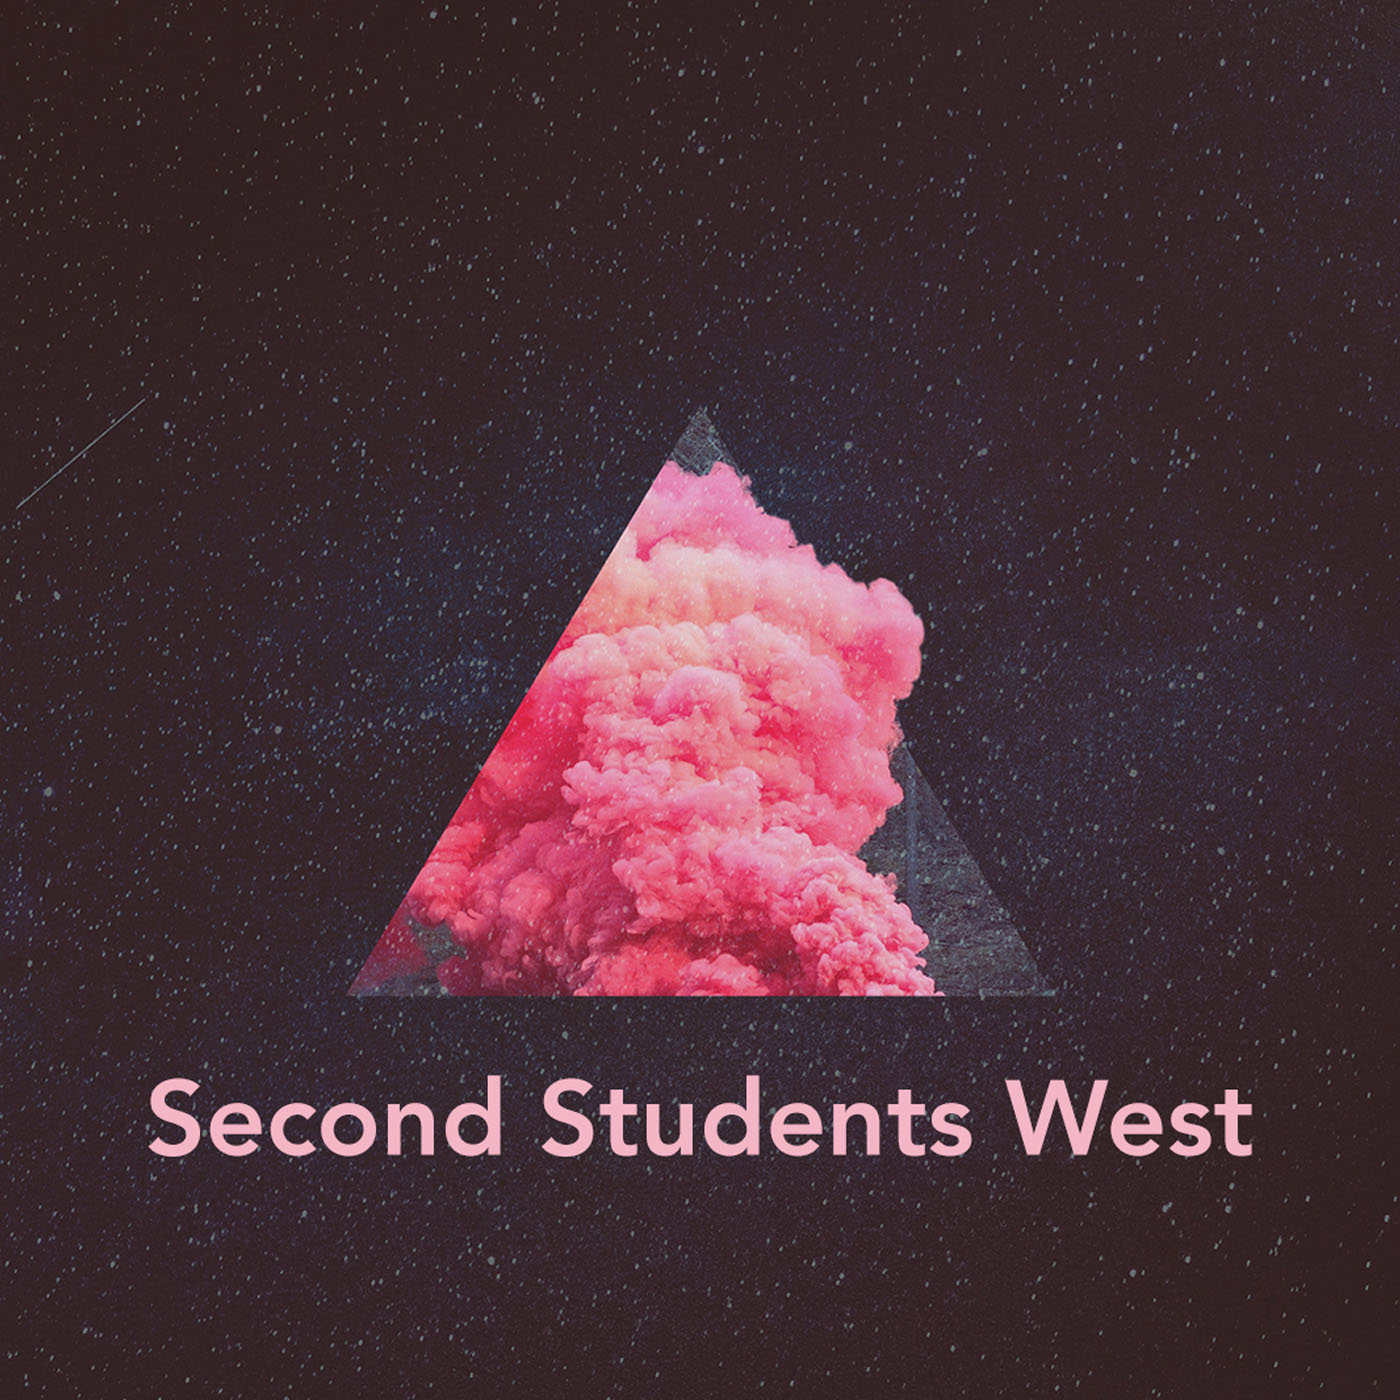 Second Students West